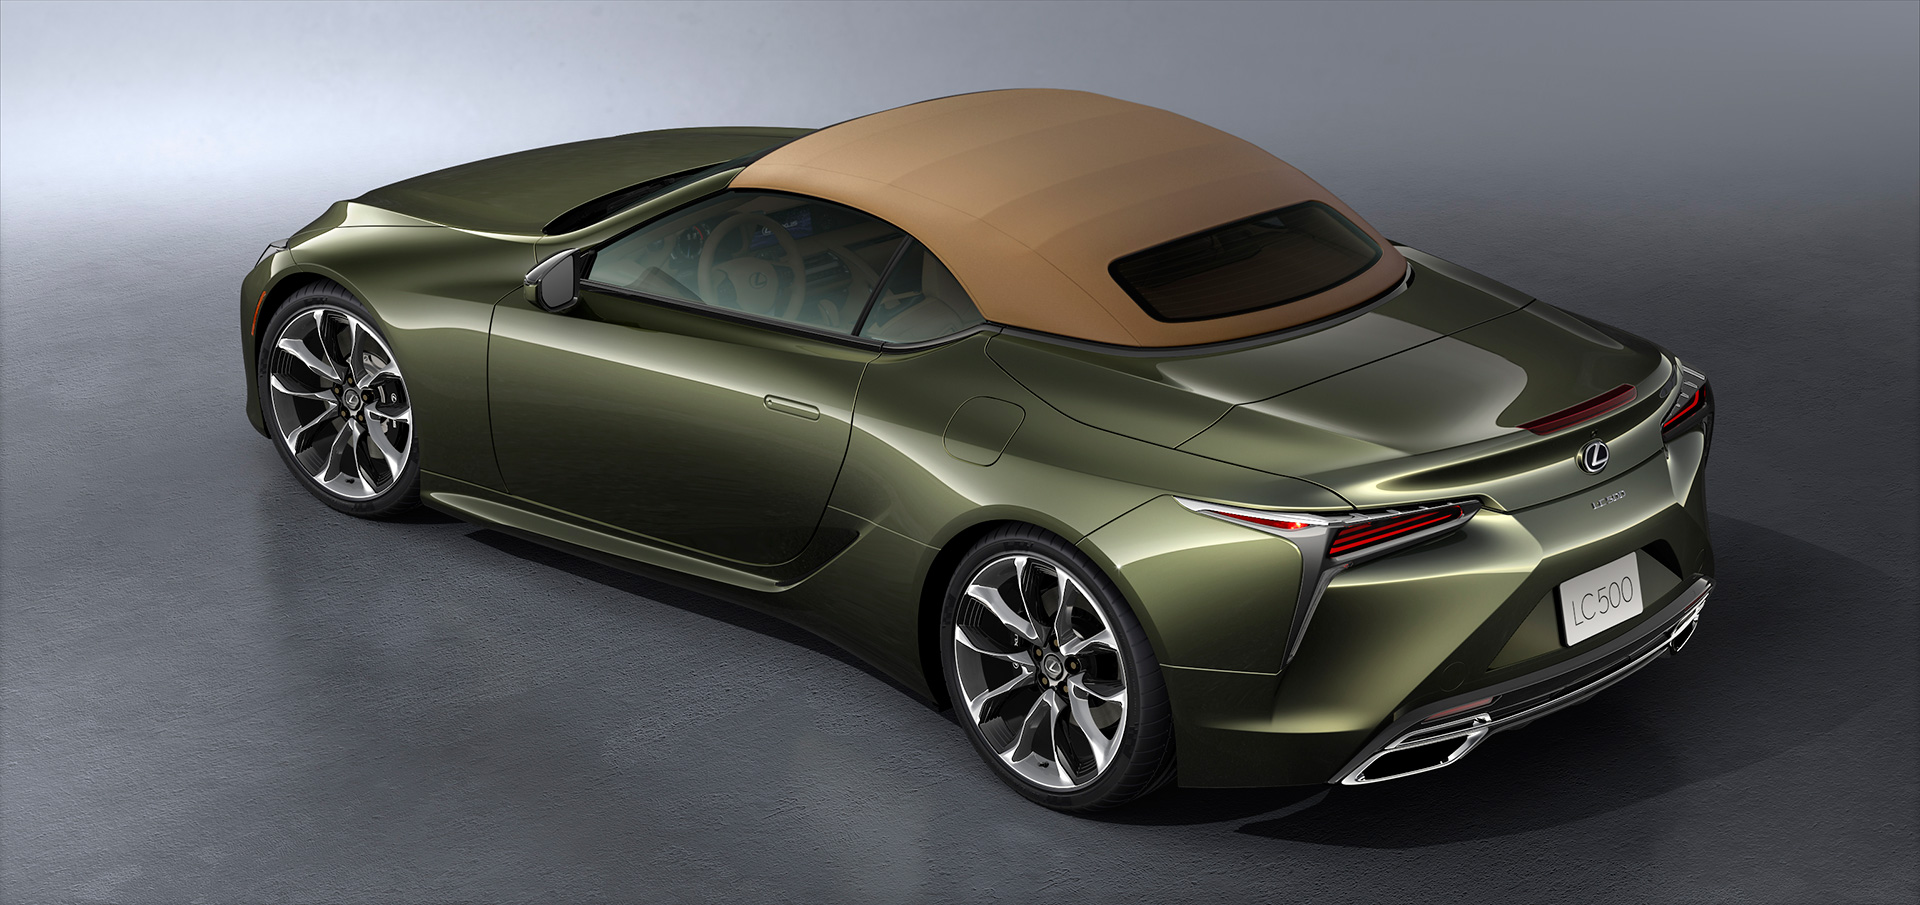 Photo Gallery All The Lexus Lc Convertible Colors Lexus Enthusiast